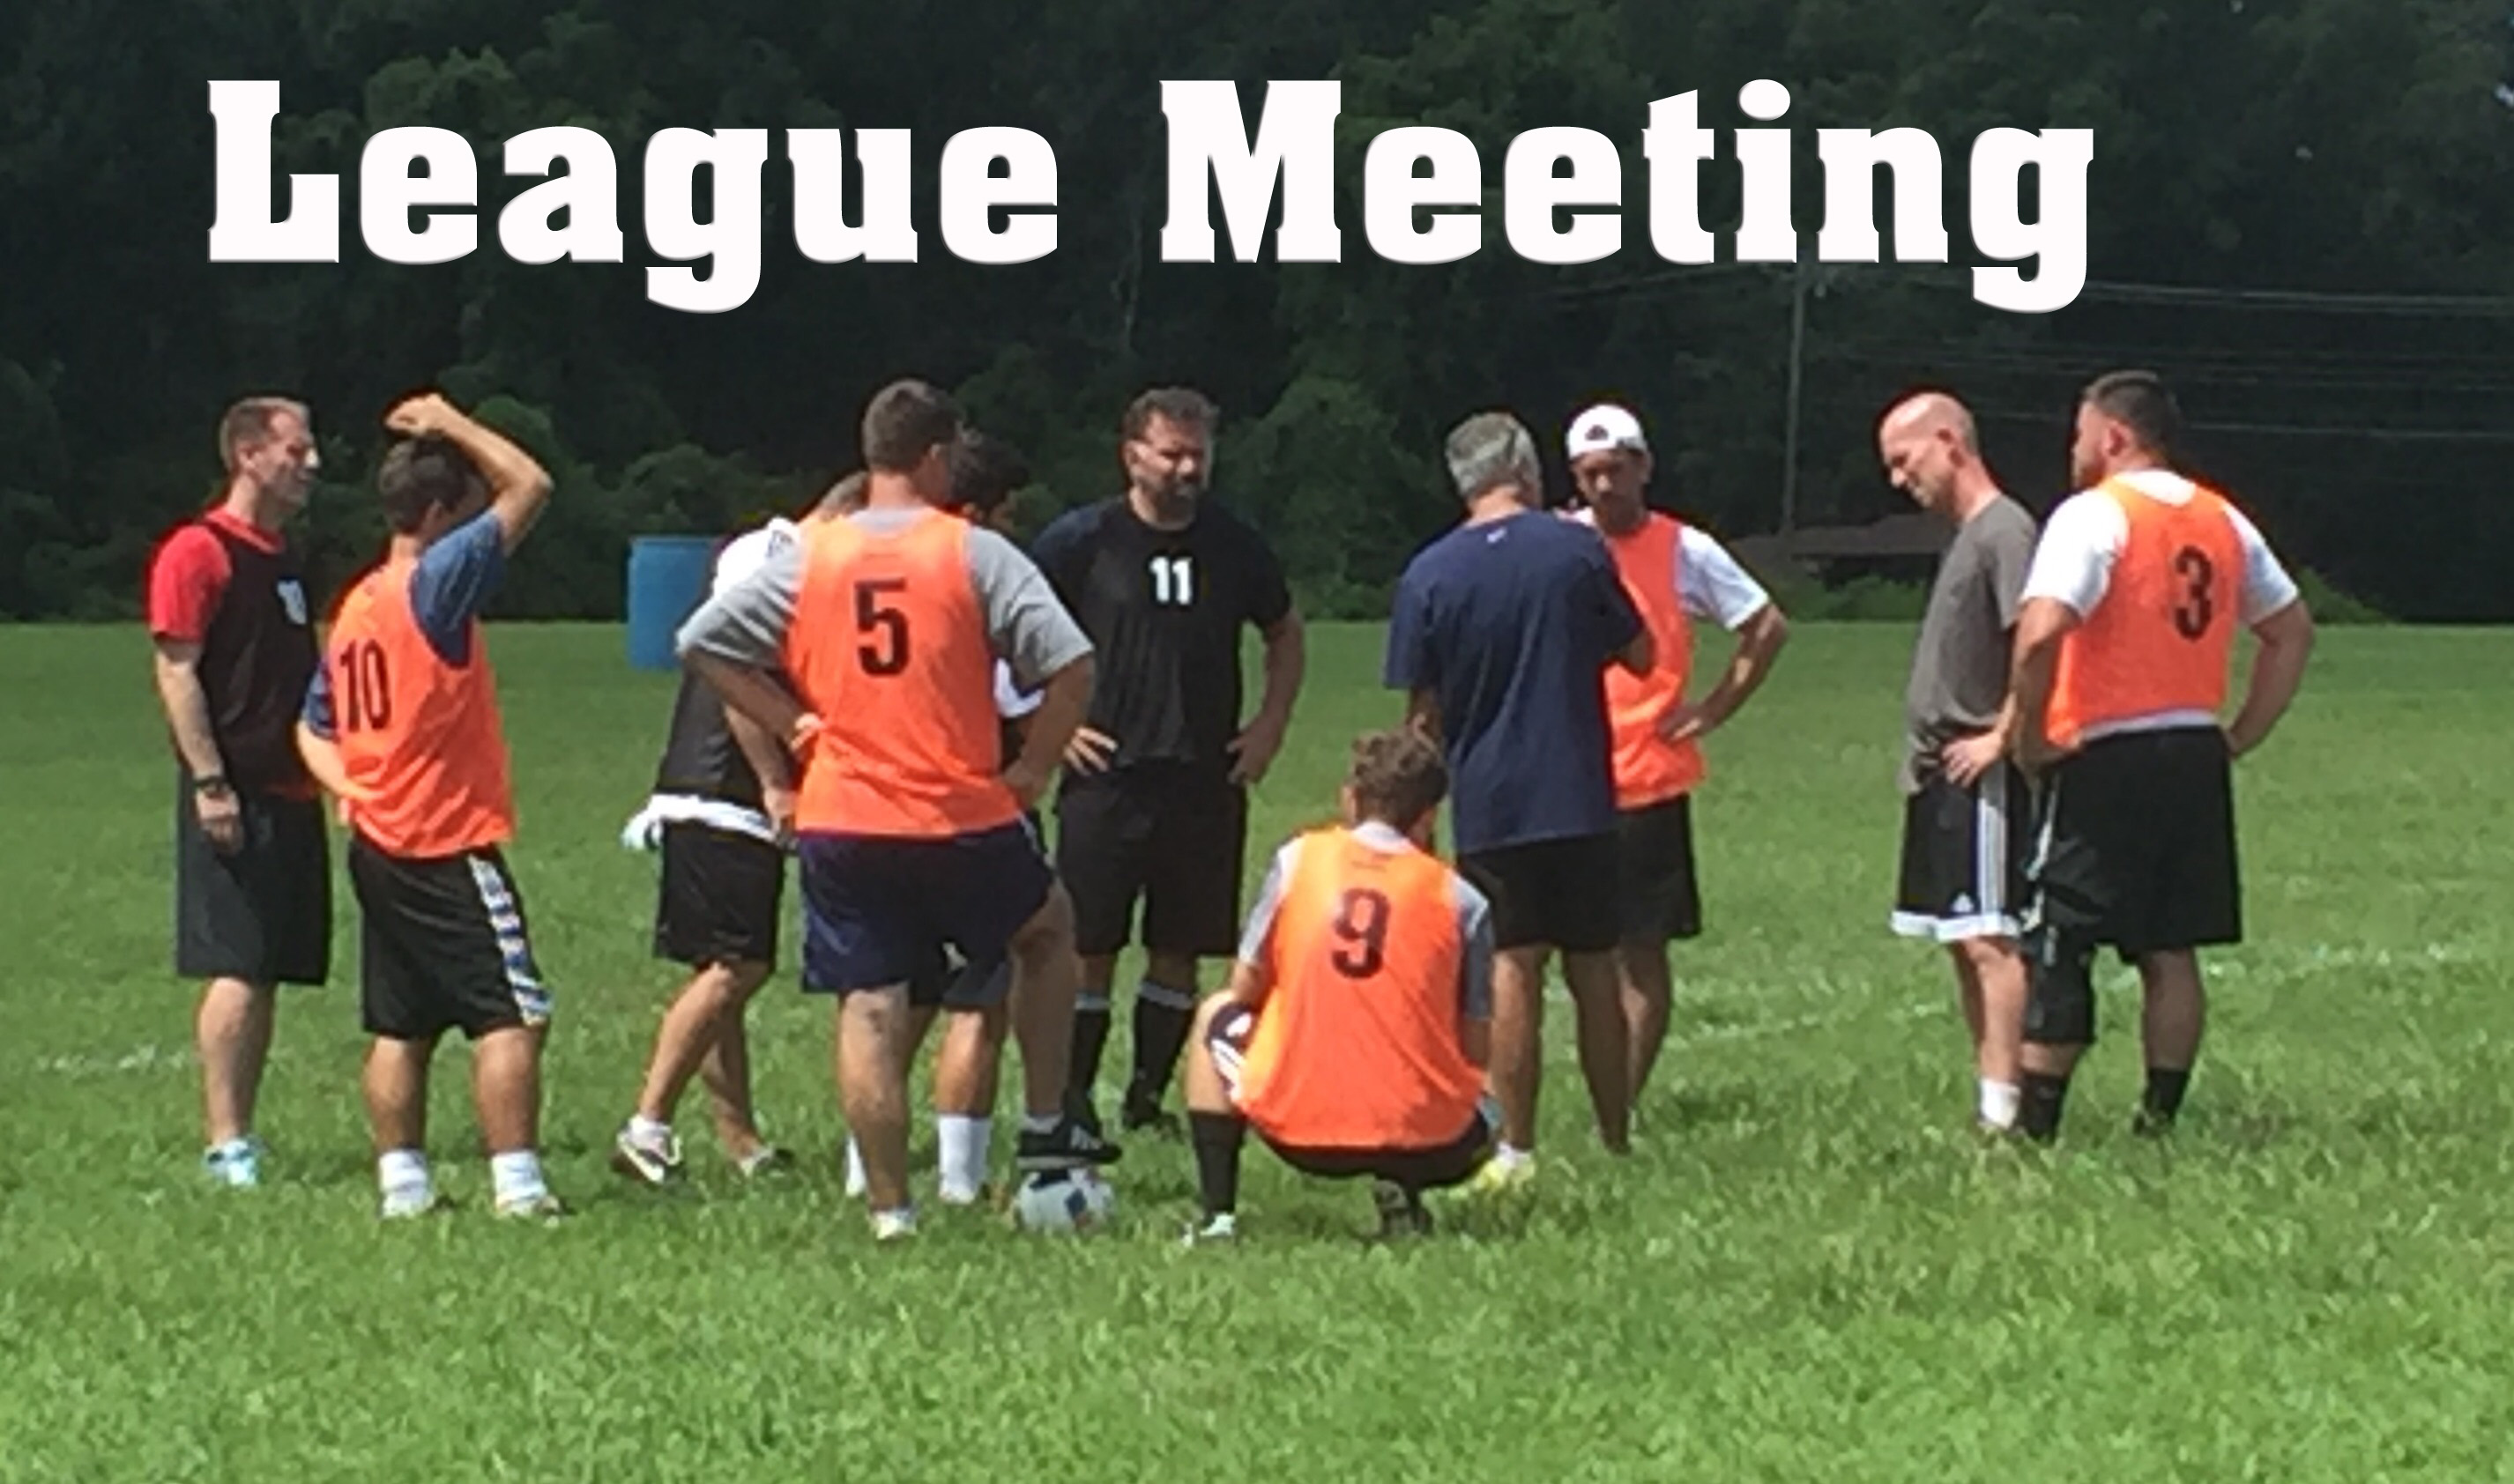 League Meeting